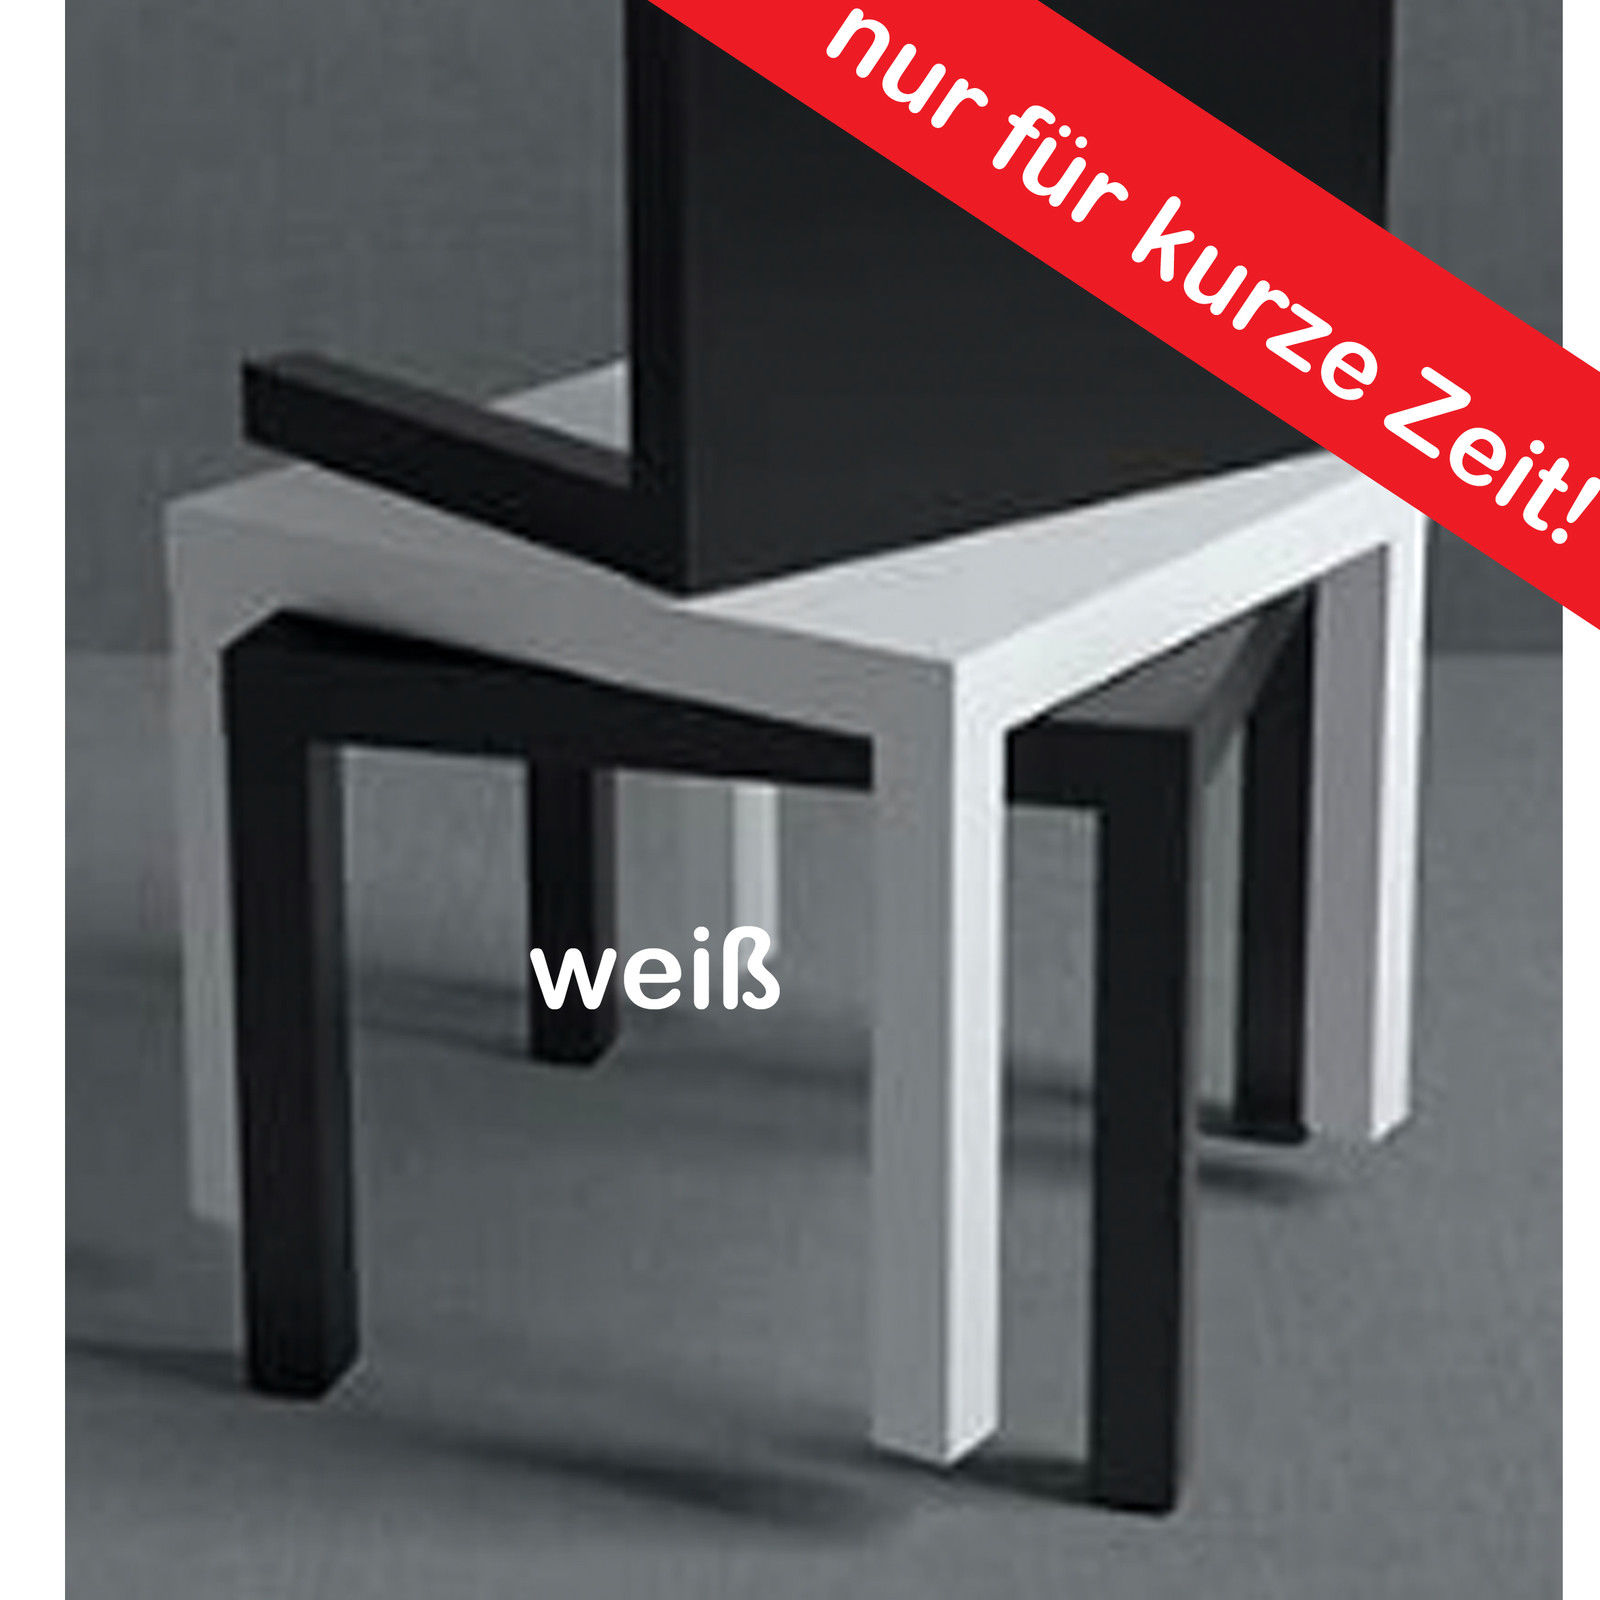 ikea ablagetisch loungetisch couchtisch beistelltisch tisch weiss 55x55cm neu traumfabrik xxl. Black Bedroom Furniture Sets. Home Design Ideas